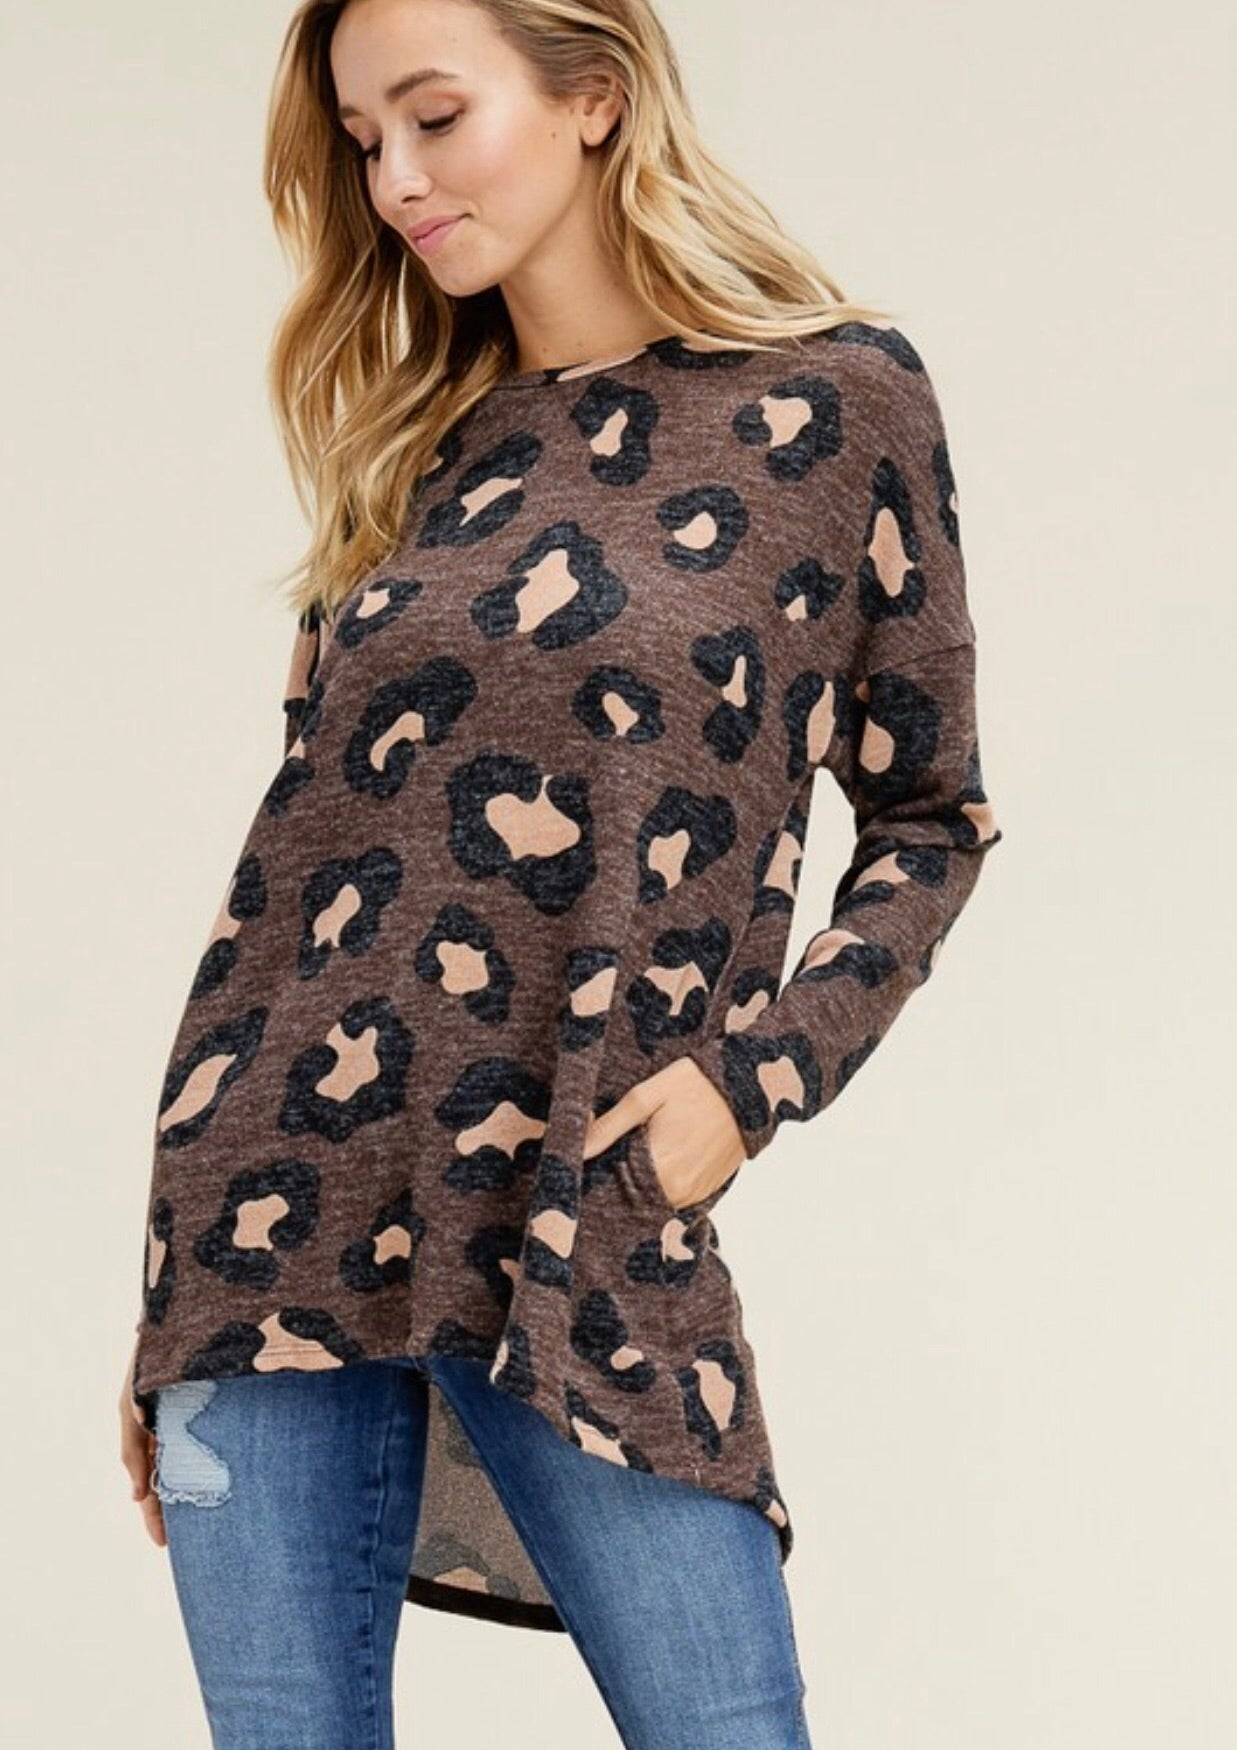 Mocha Leopard Print High Low Tunic